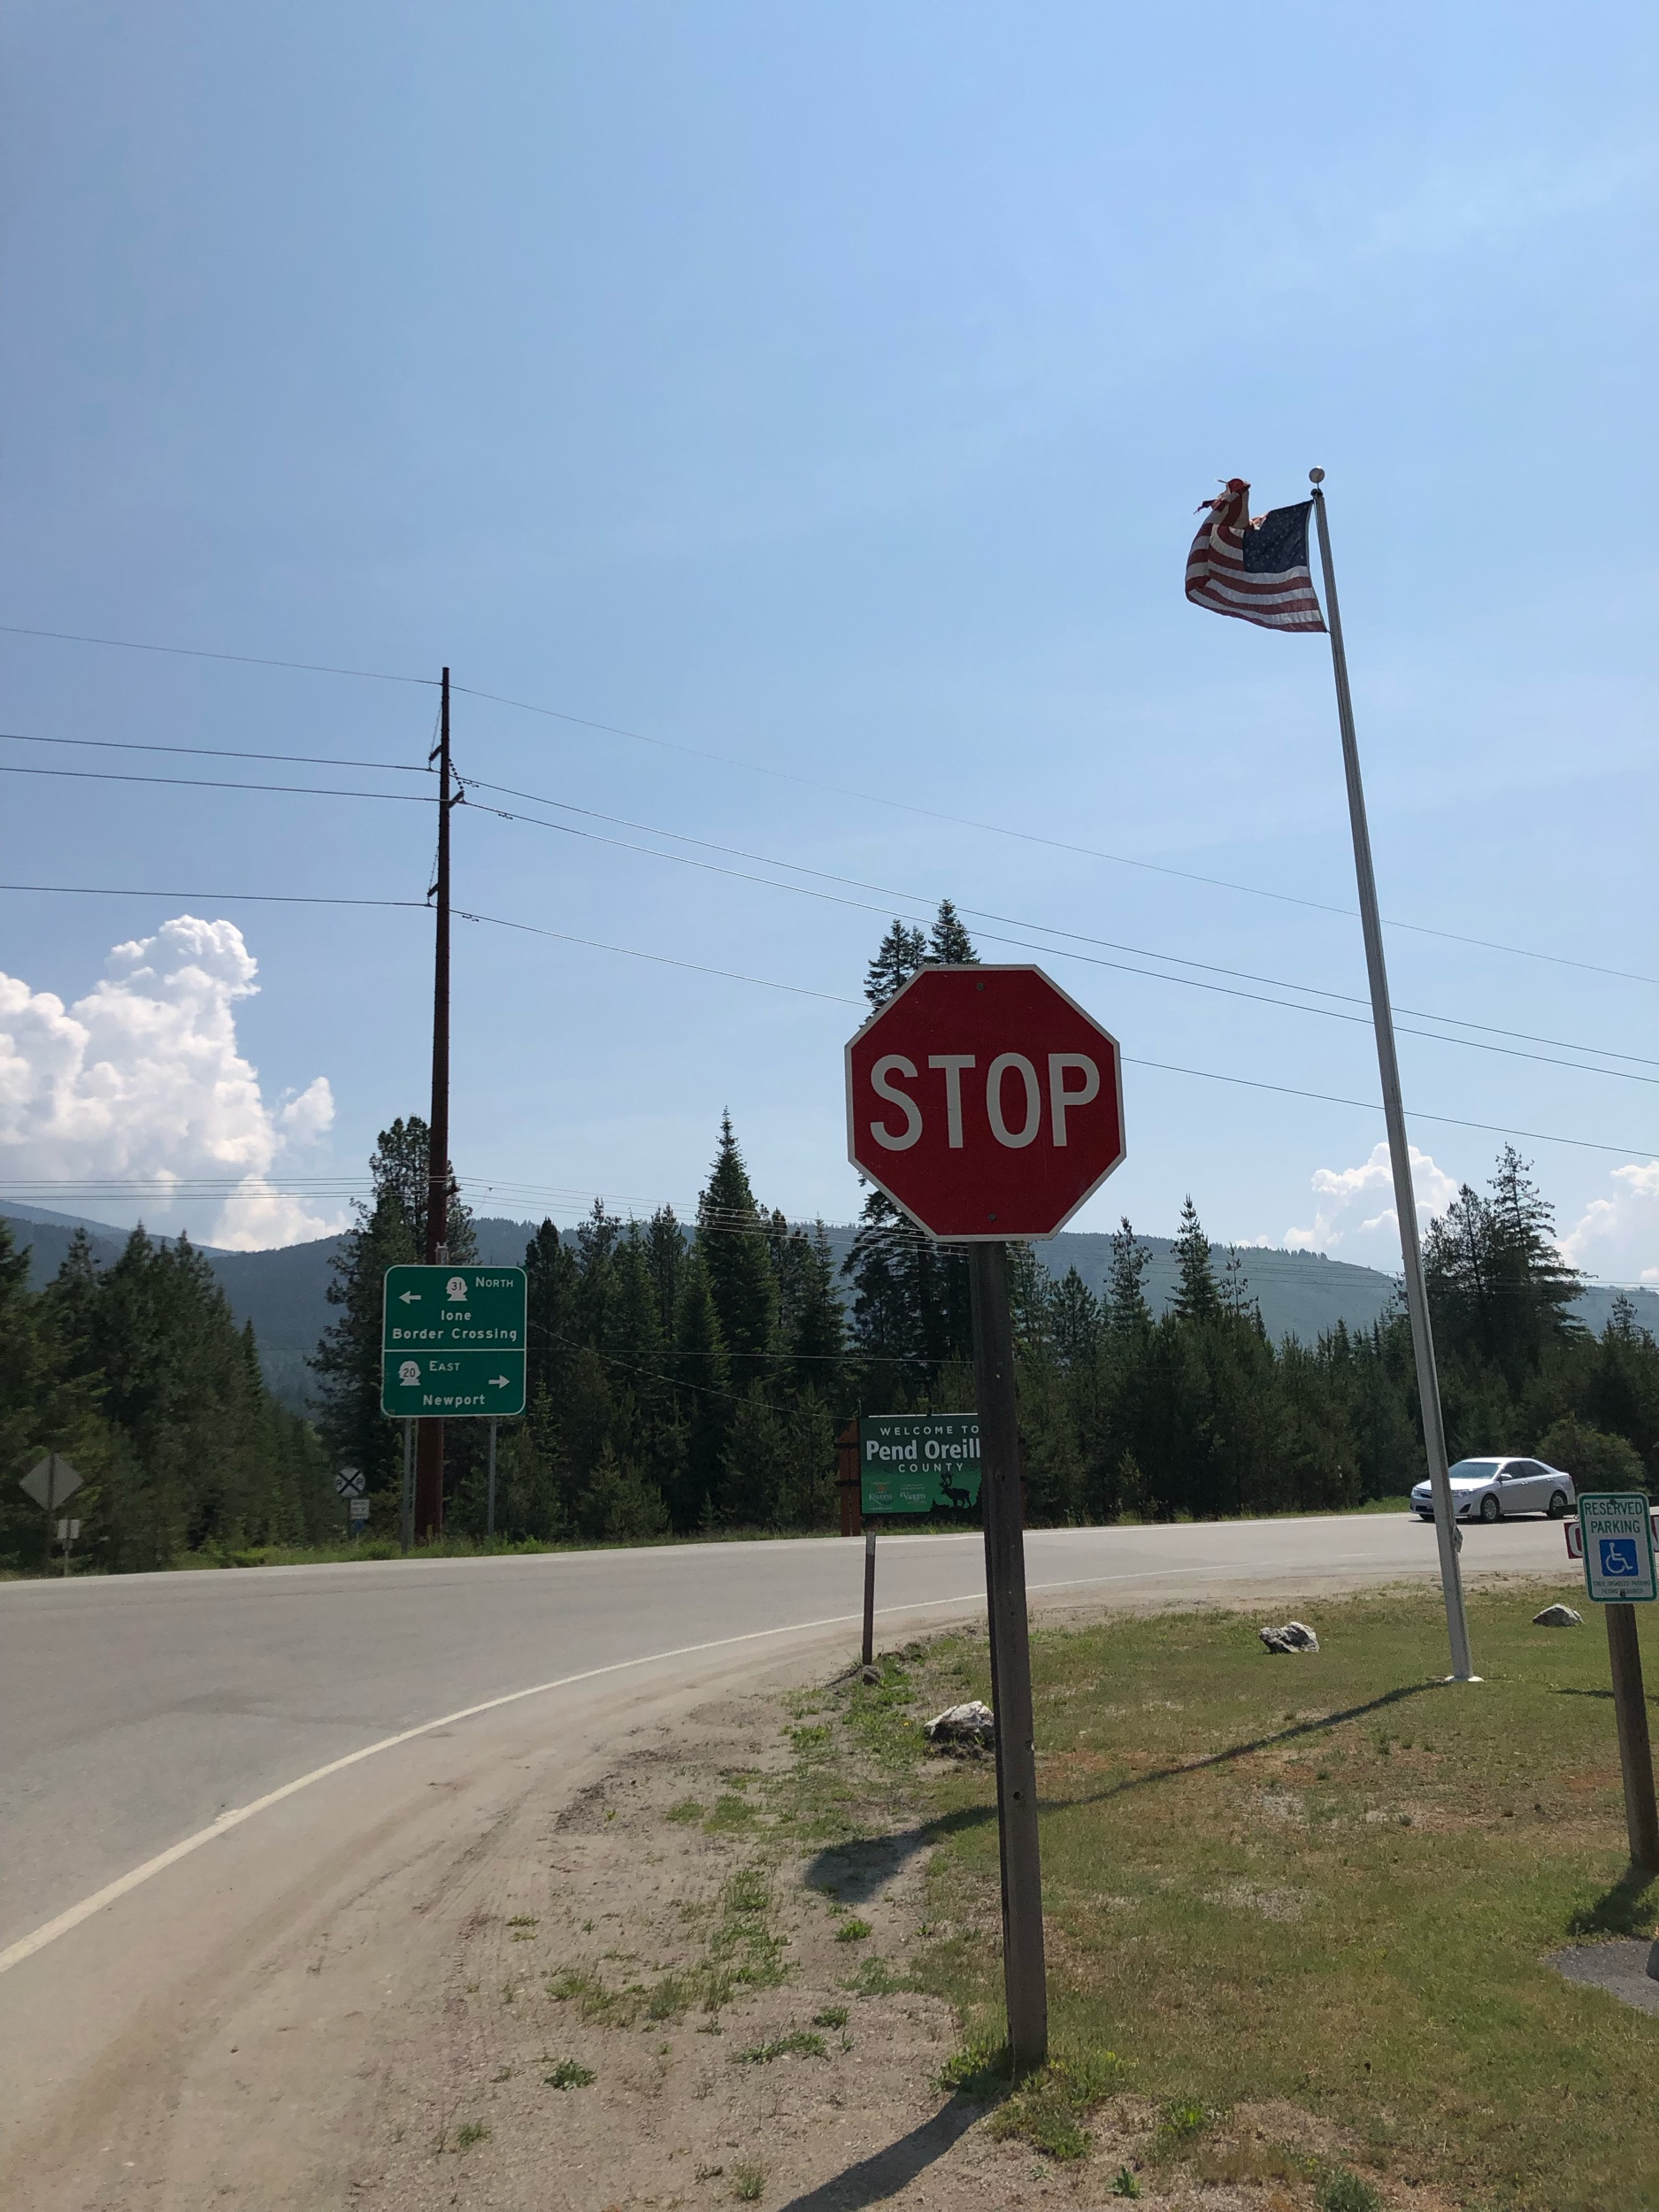 The westward blowing flag in this picture is the real stop sign for an eastbound biker